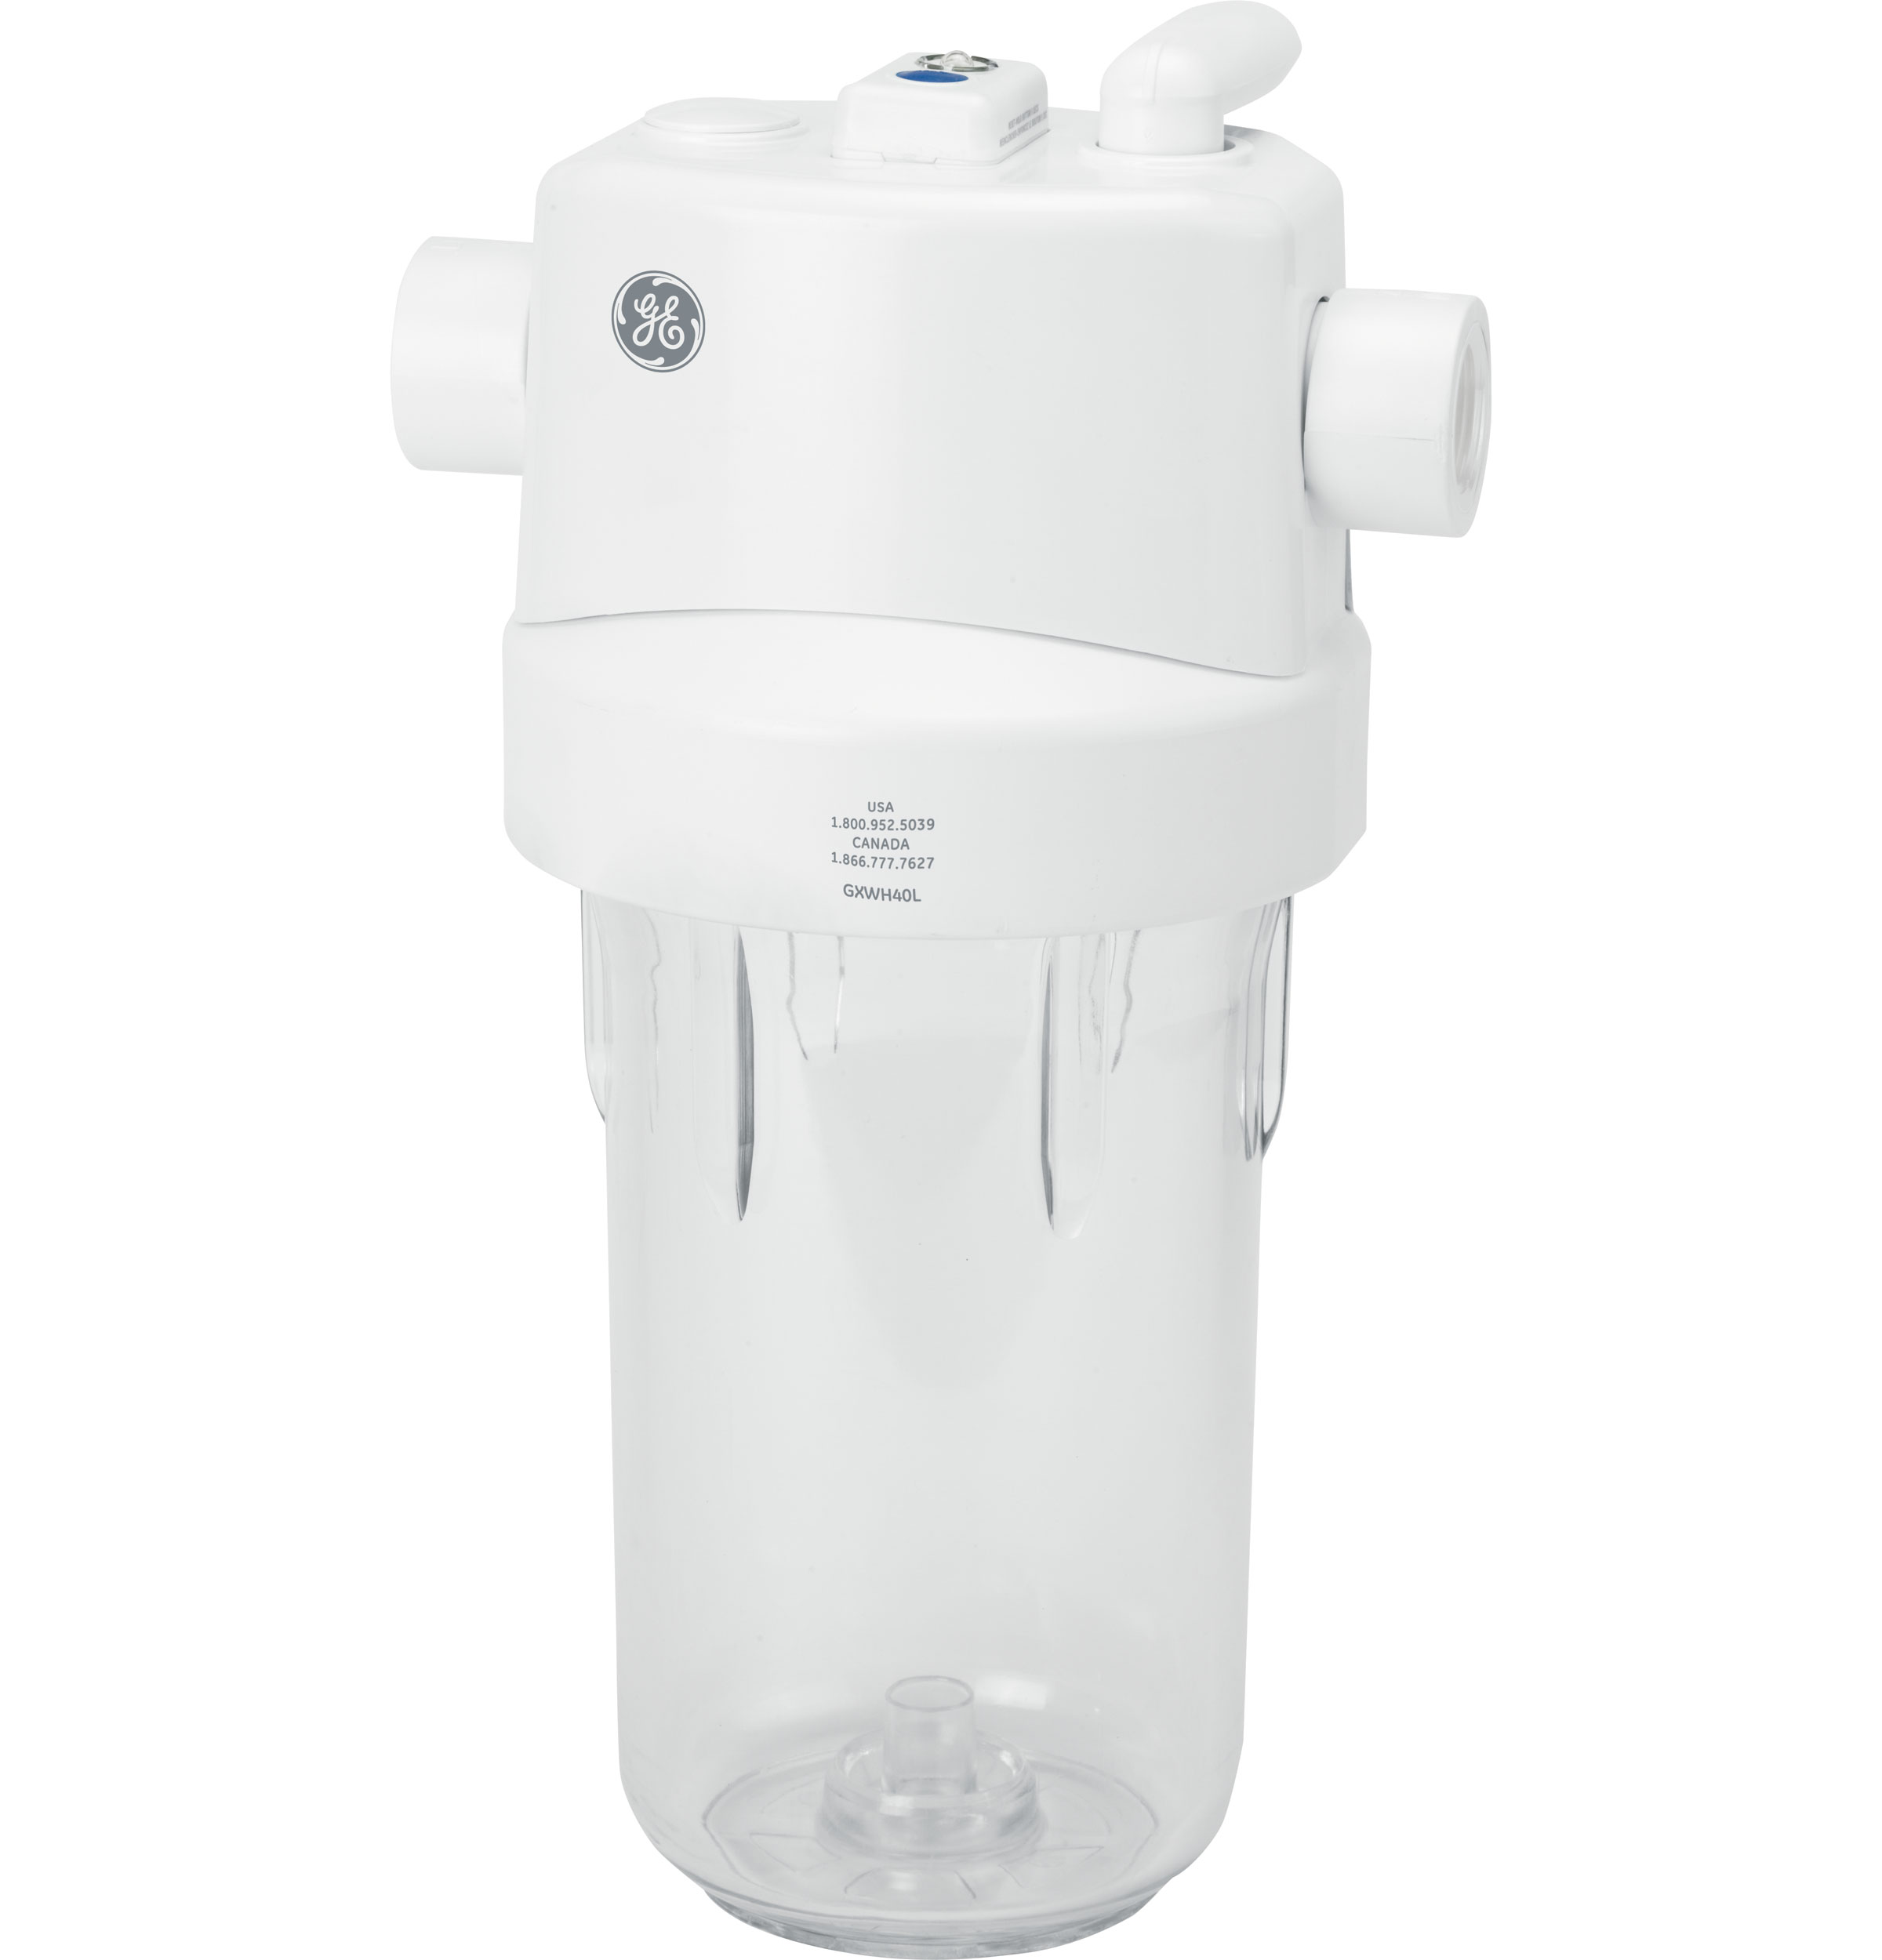 Gxwh40l Whole Home Water Filtration System Ge